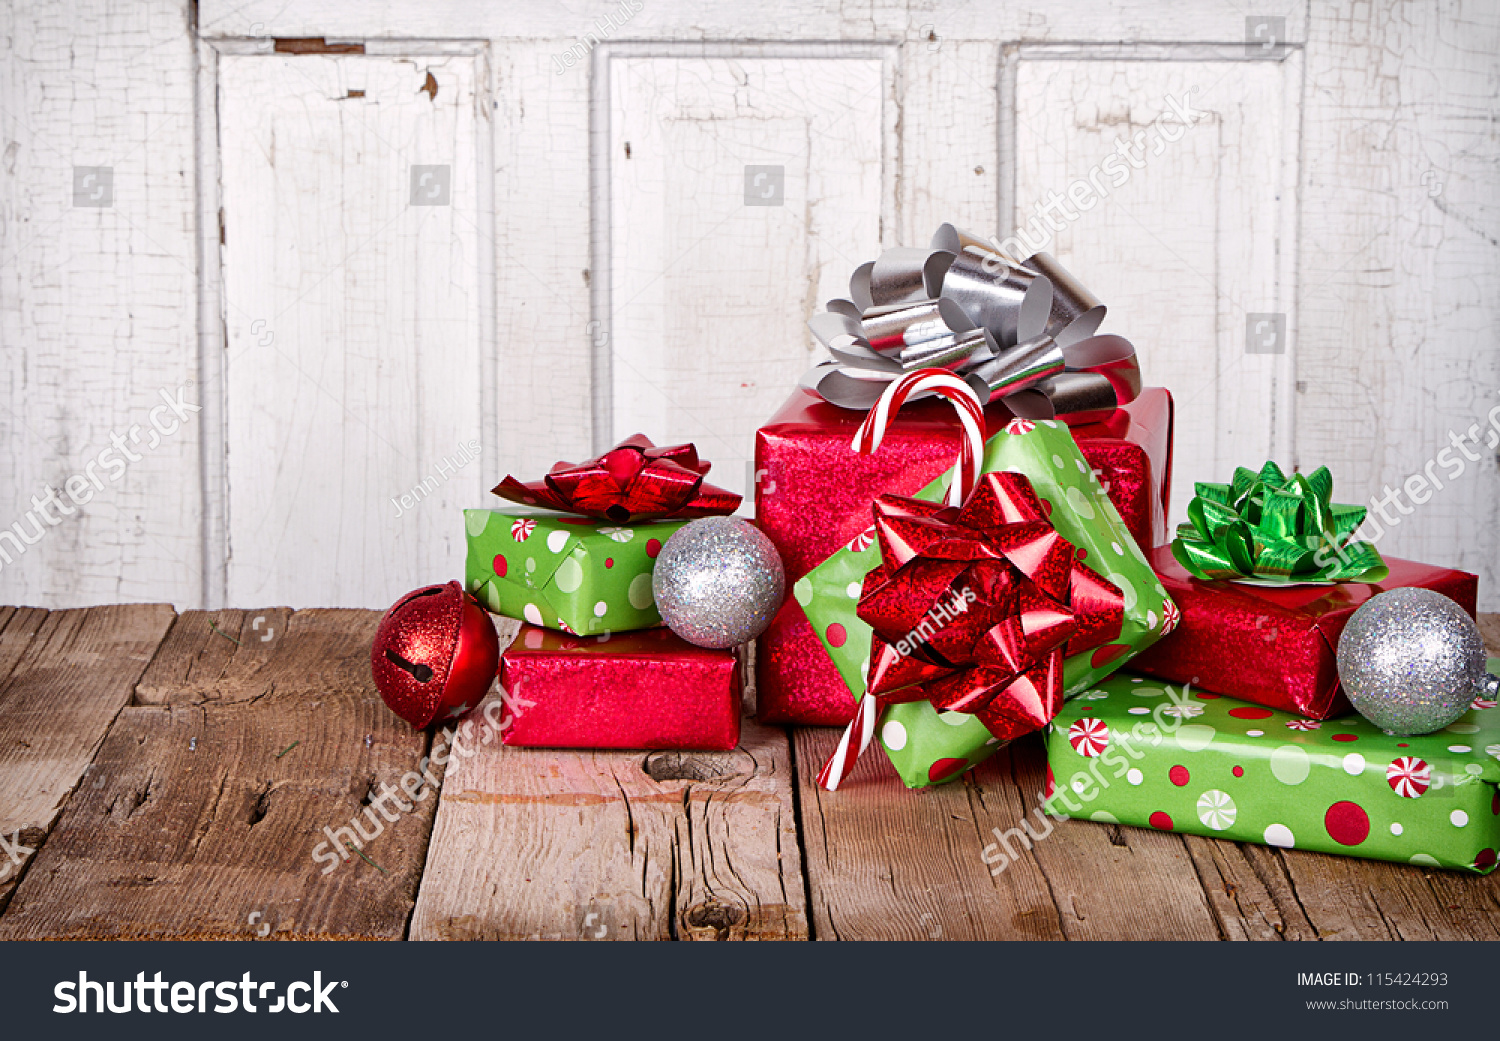 Christmas presents ornaments on wooden background stock